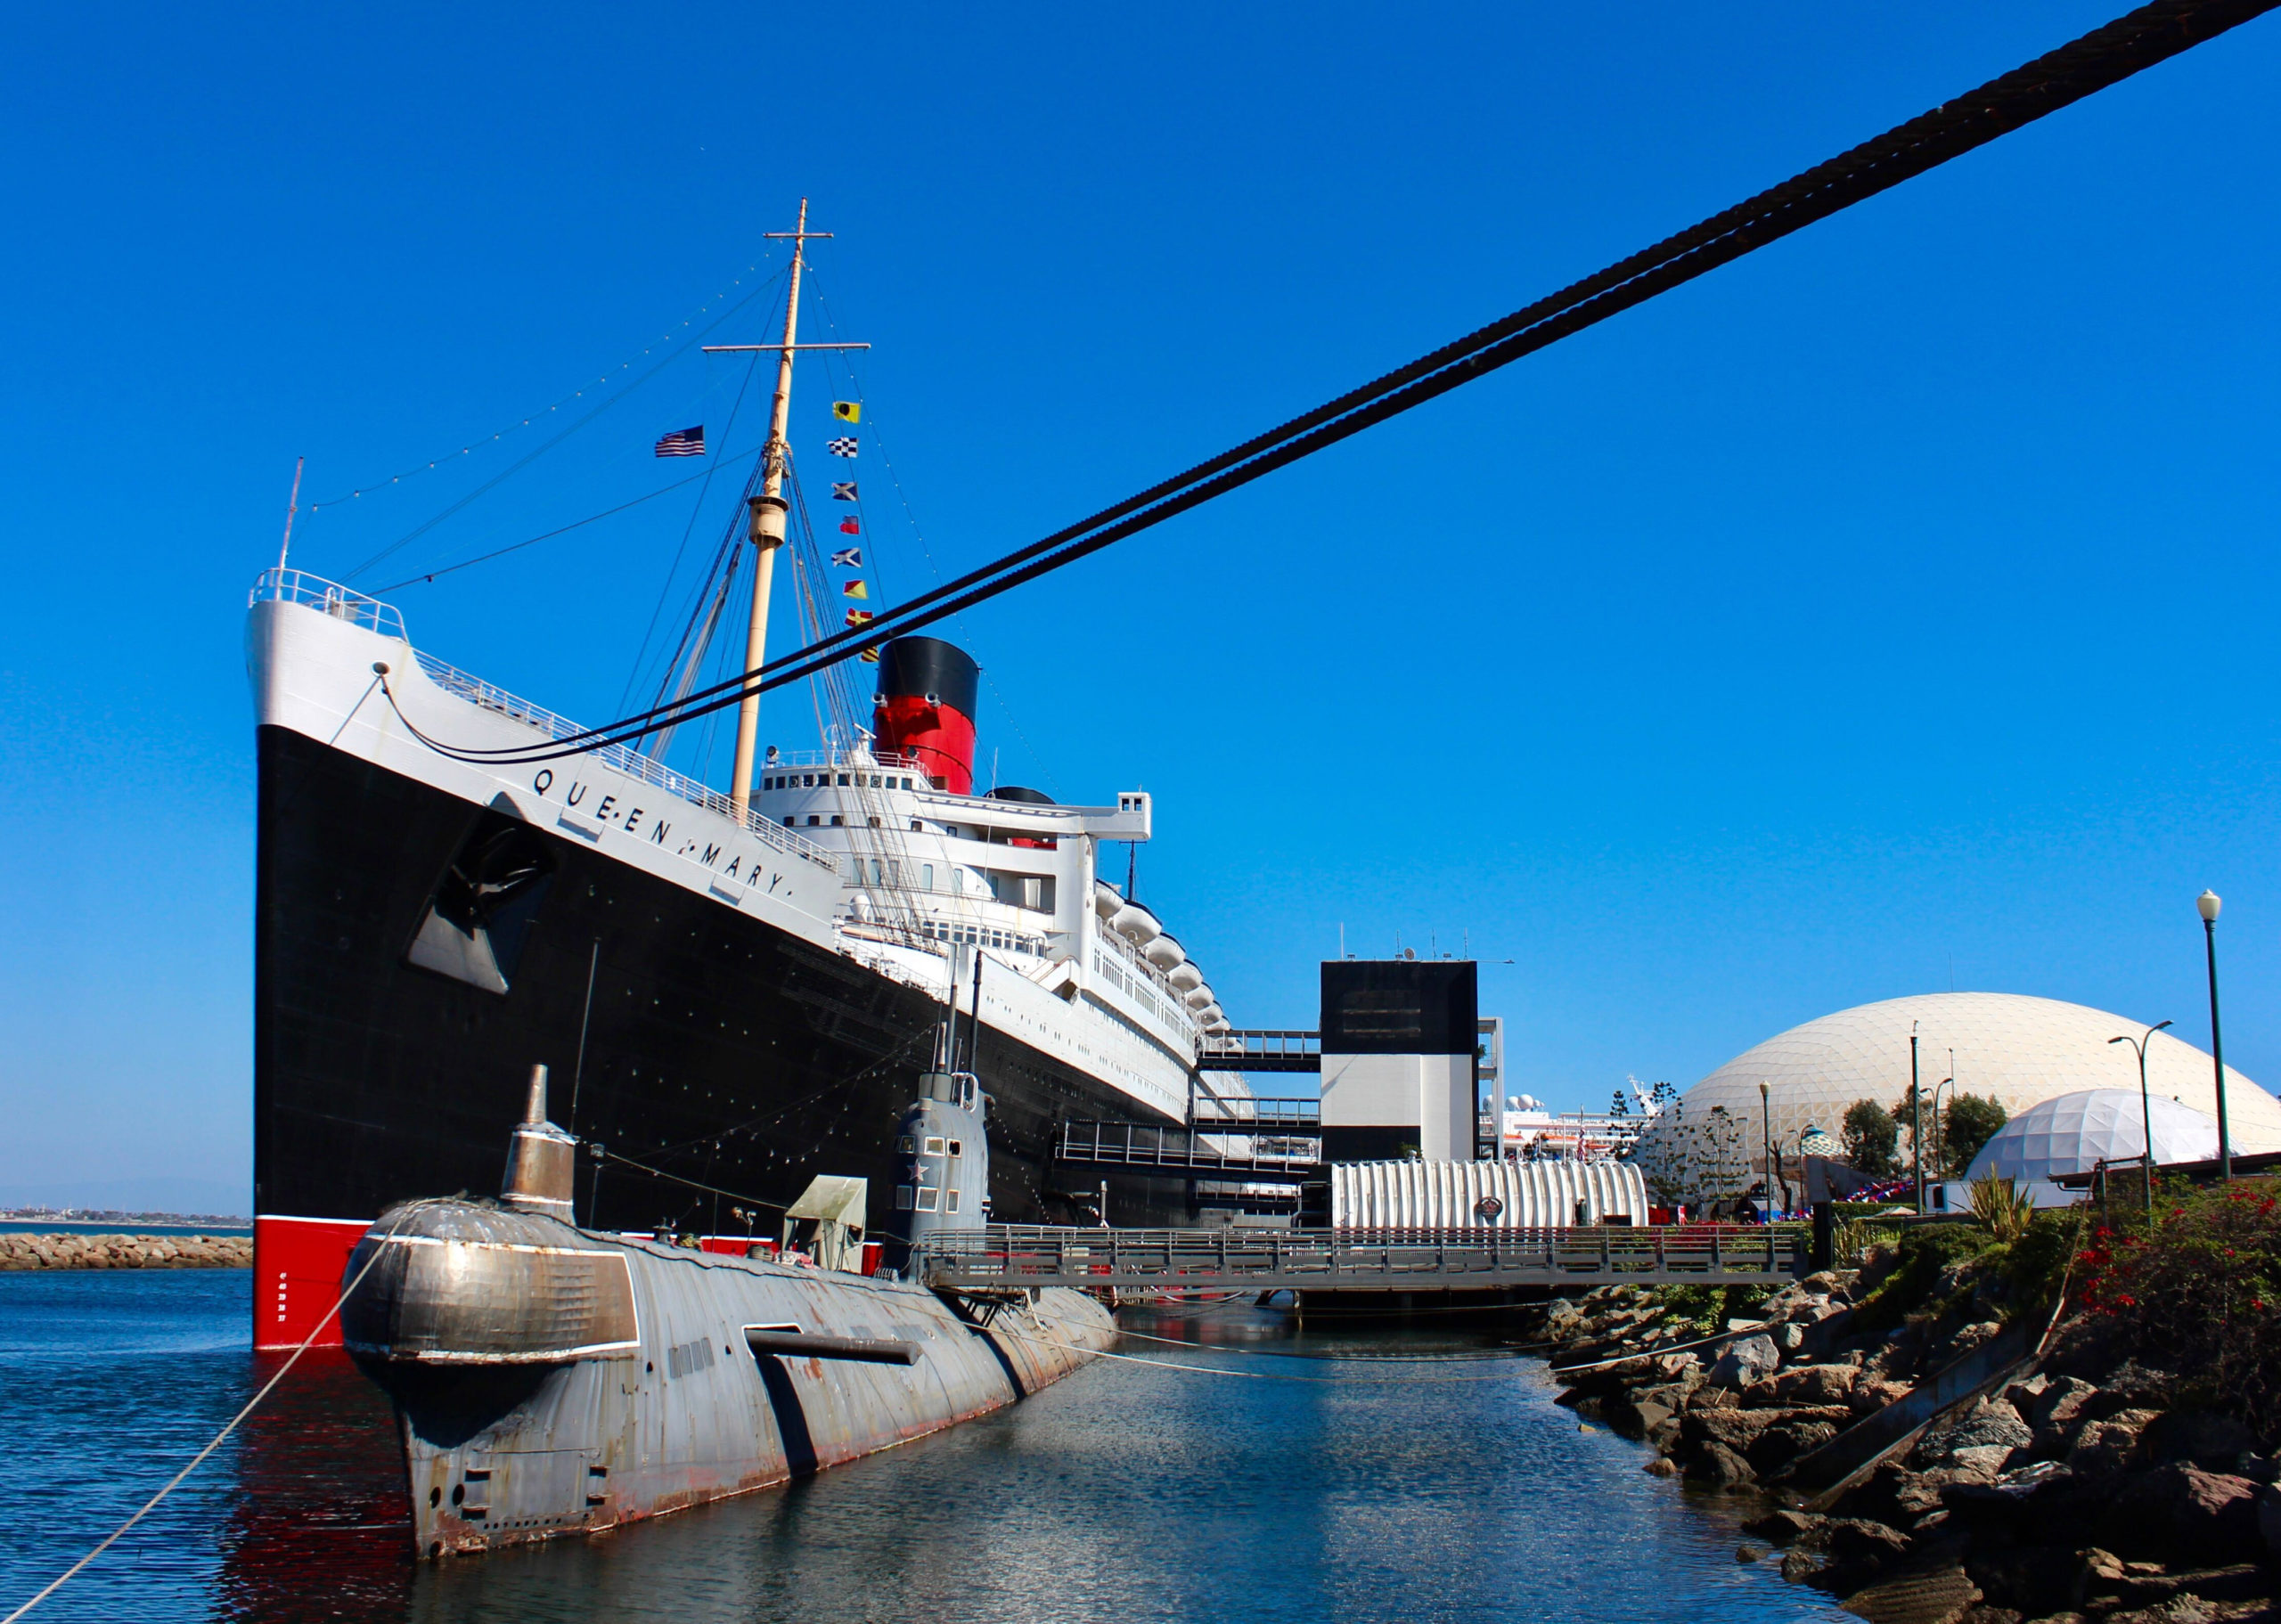 Queen Mary Operator Owes Cities